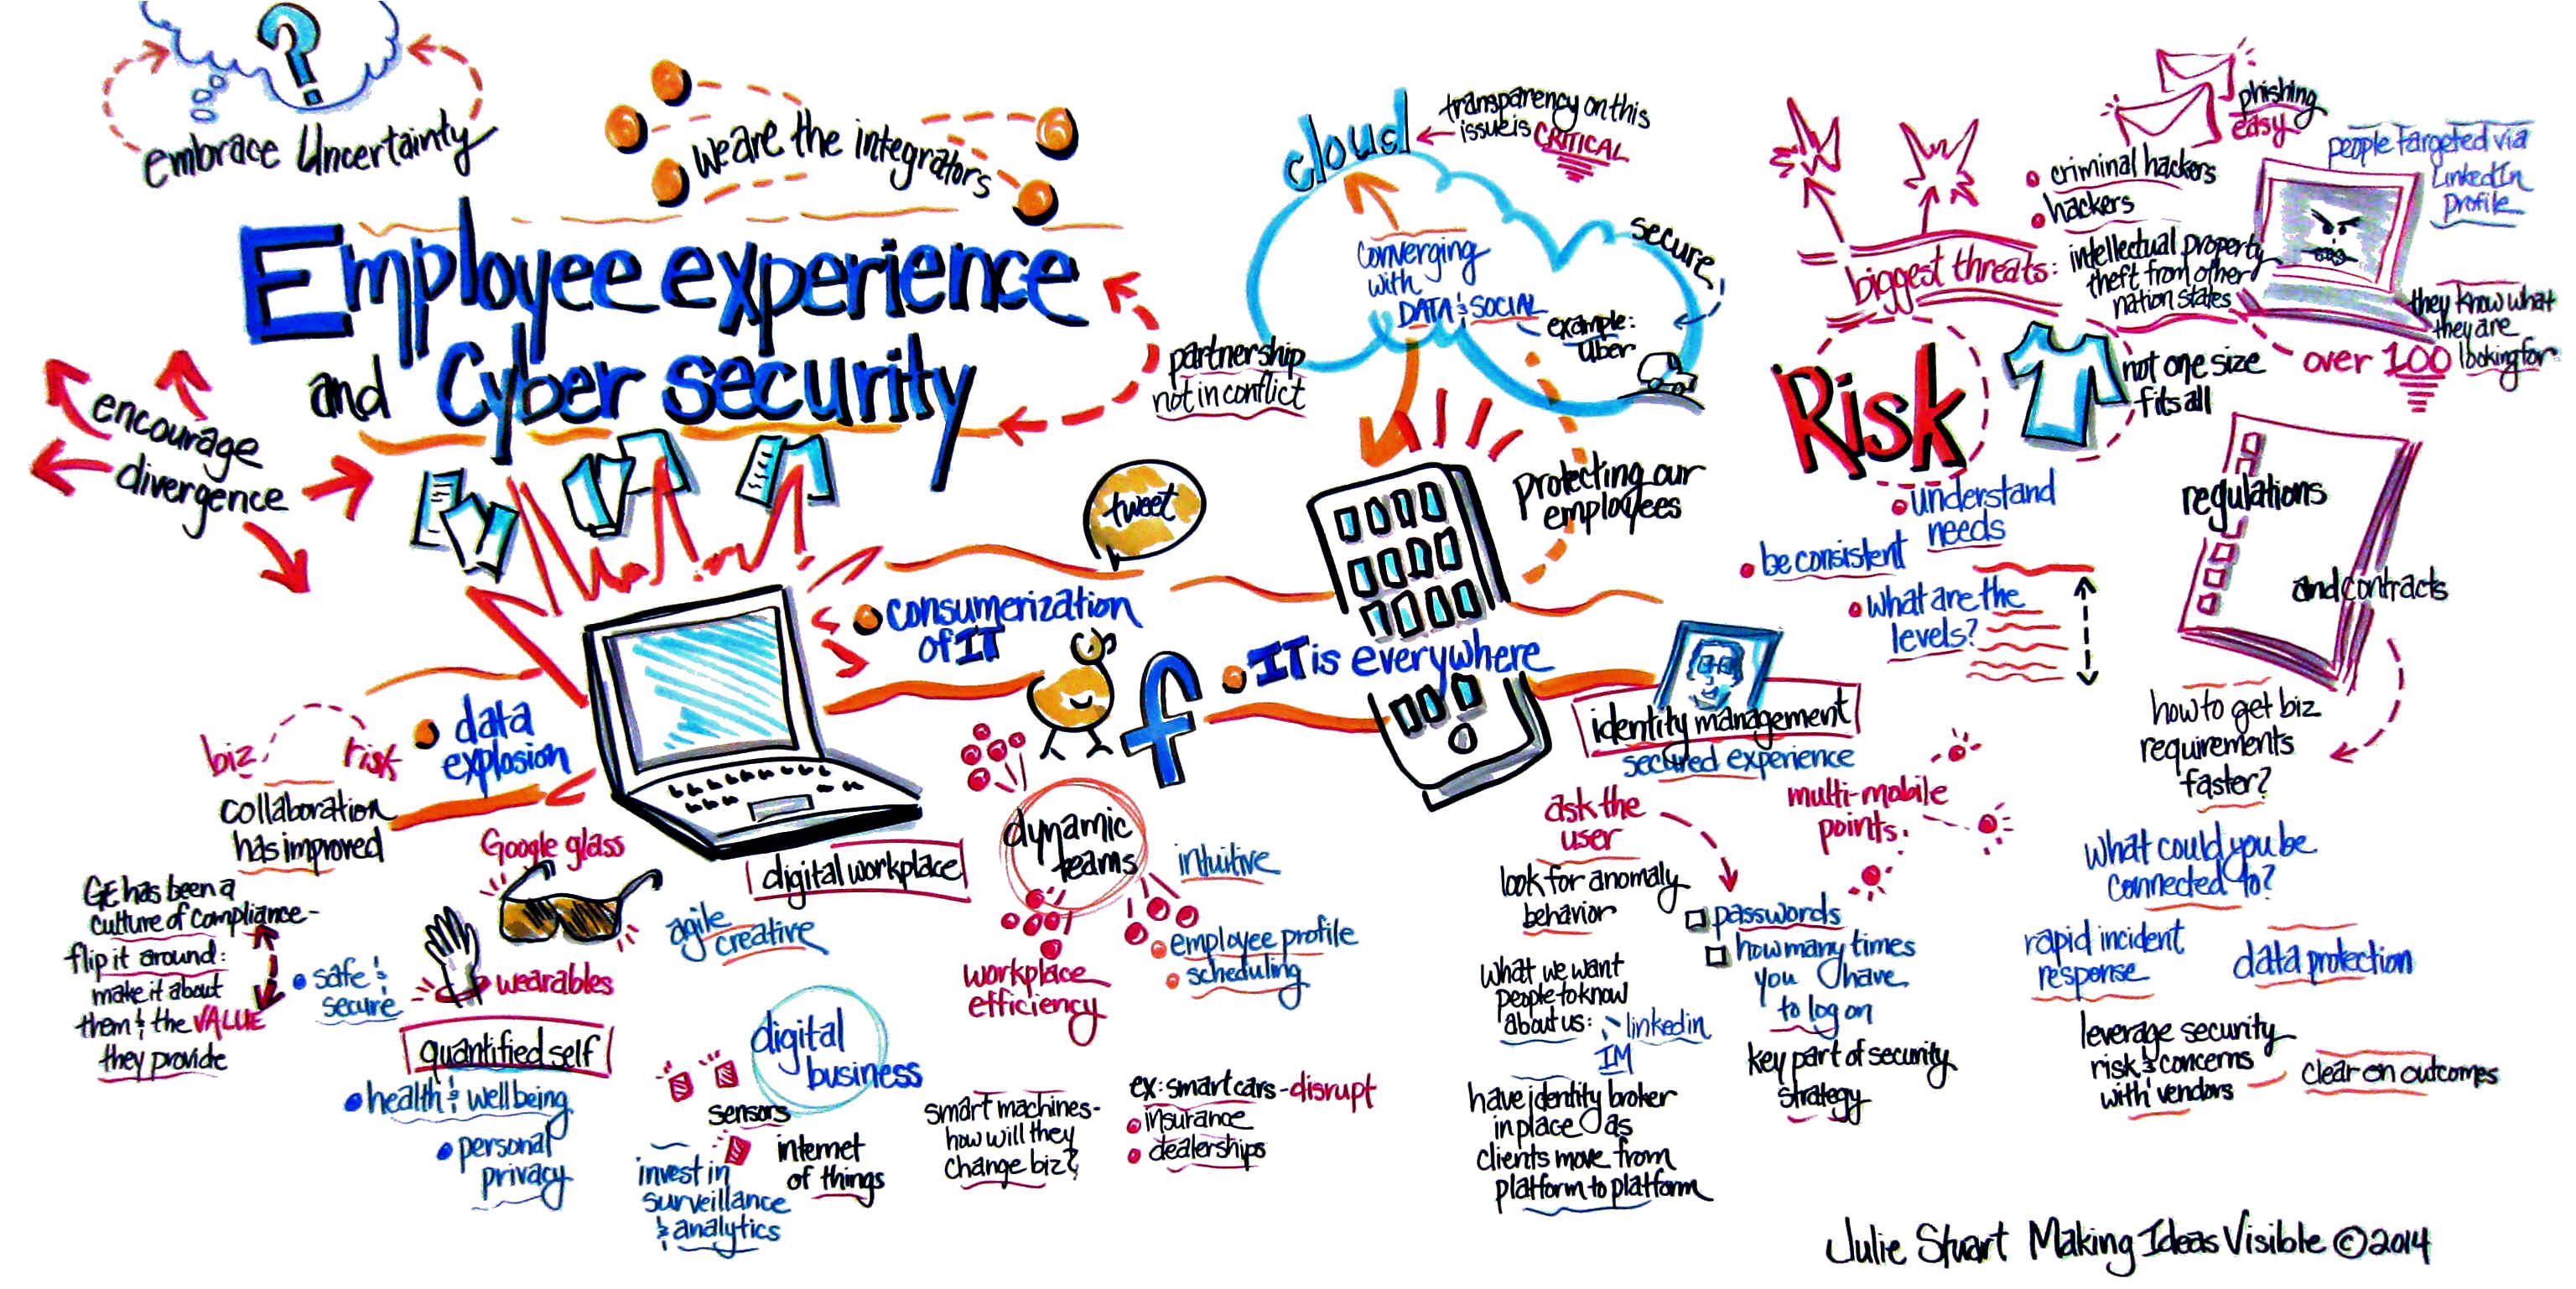 Employee experience and cyber security